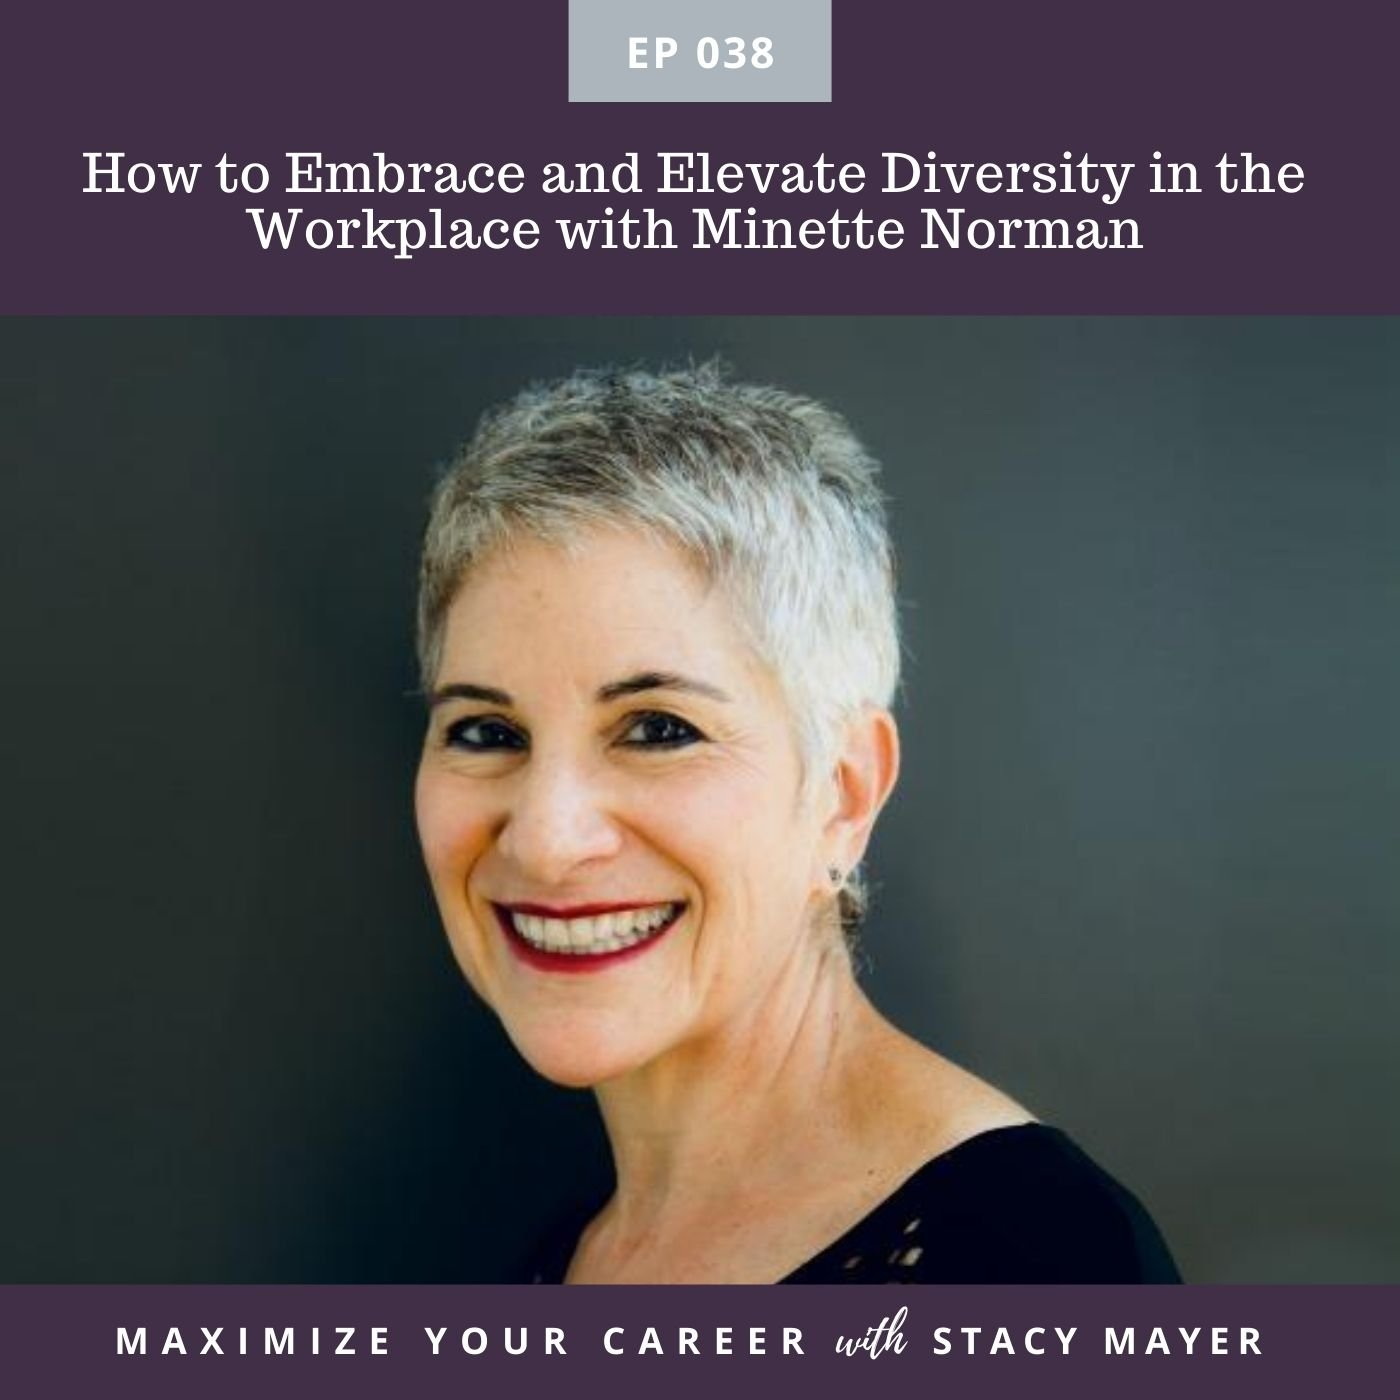 Episode art - How to Embrace and Elevate Diversity in the Workplace with Minette Norman